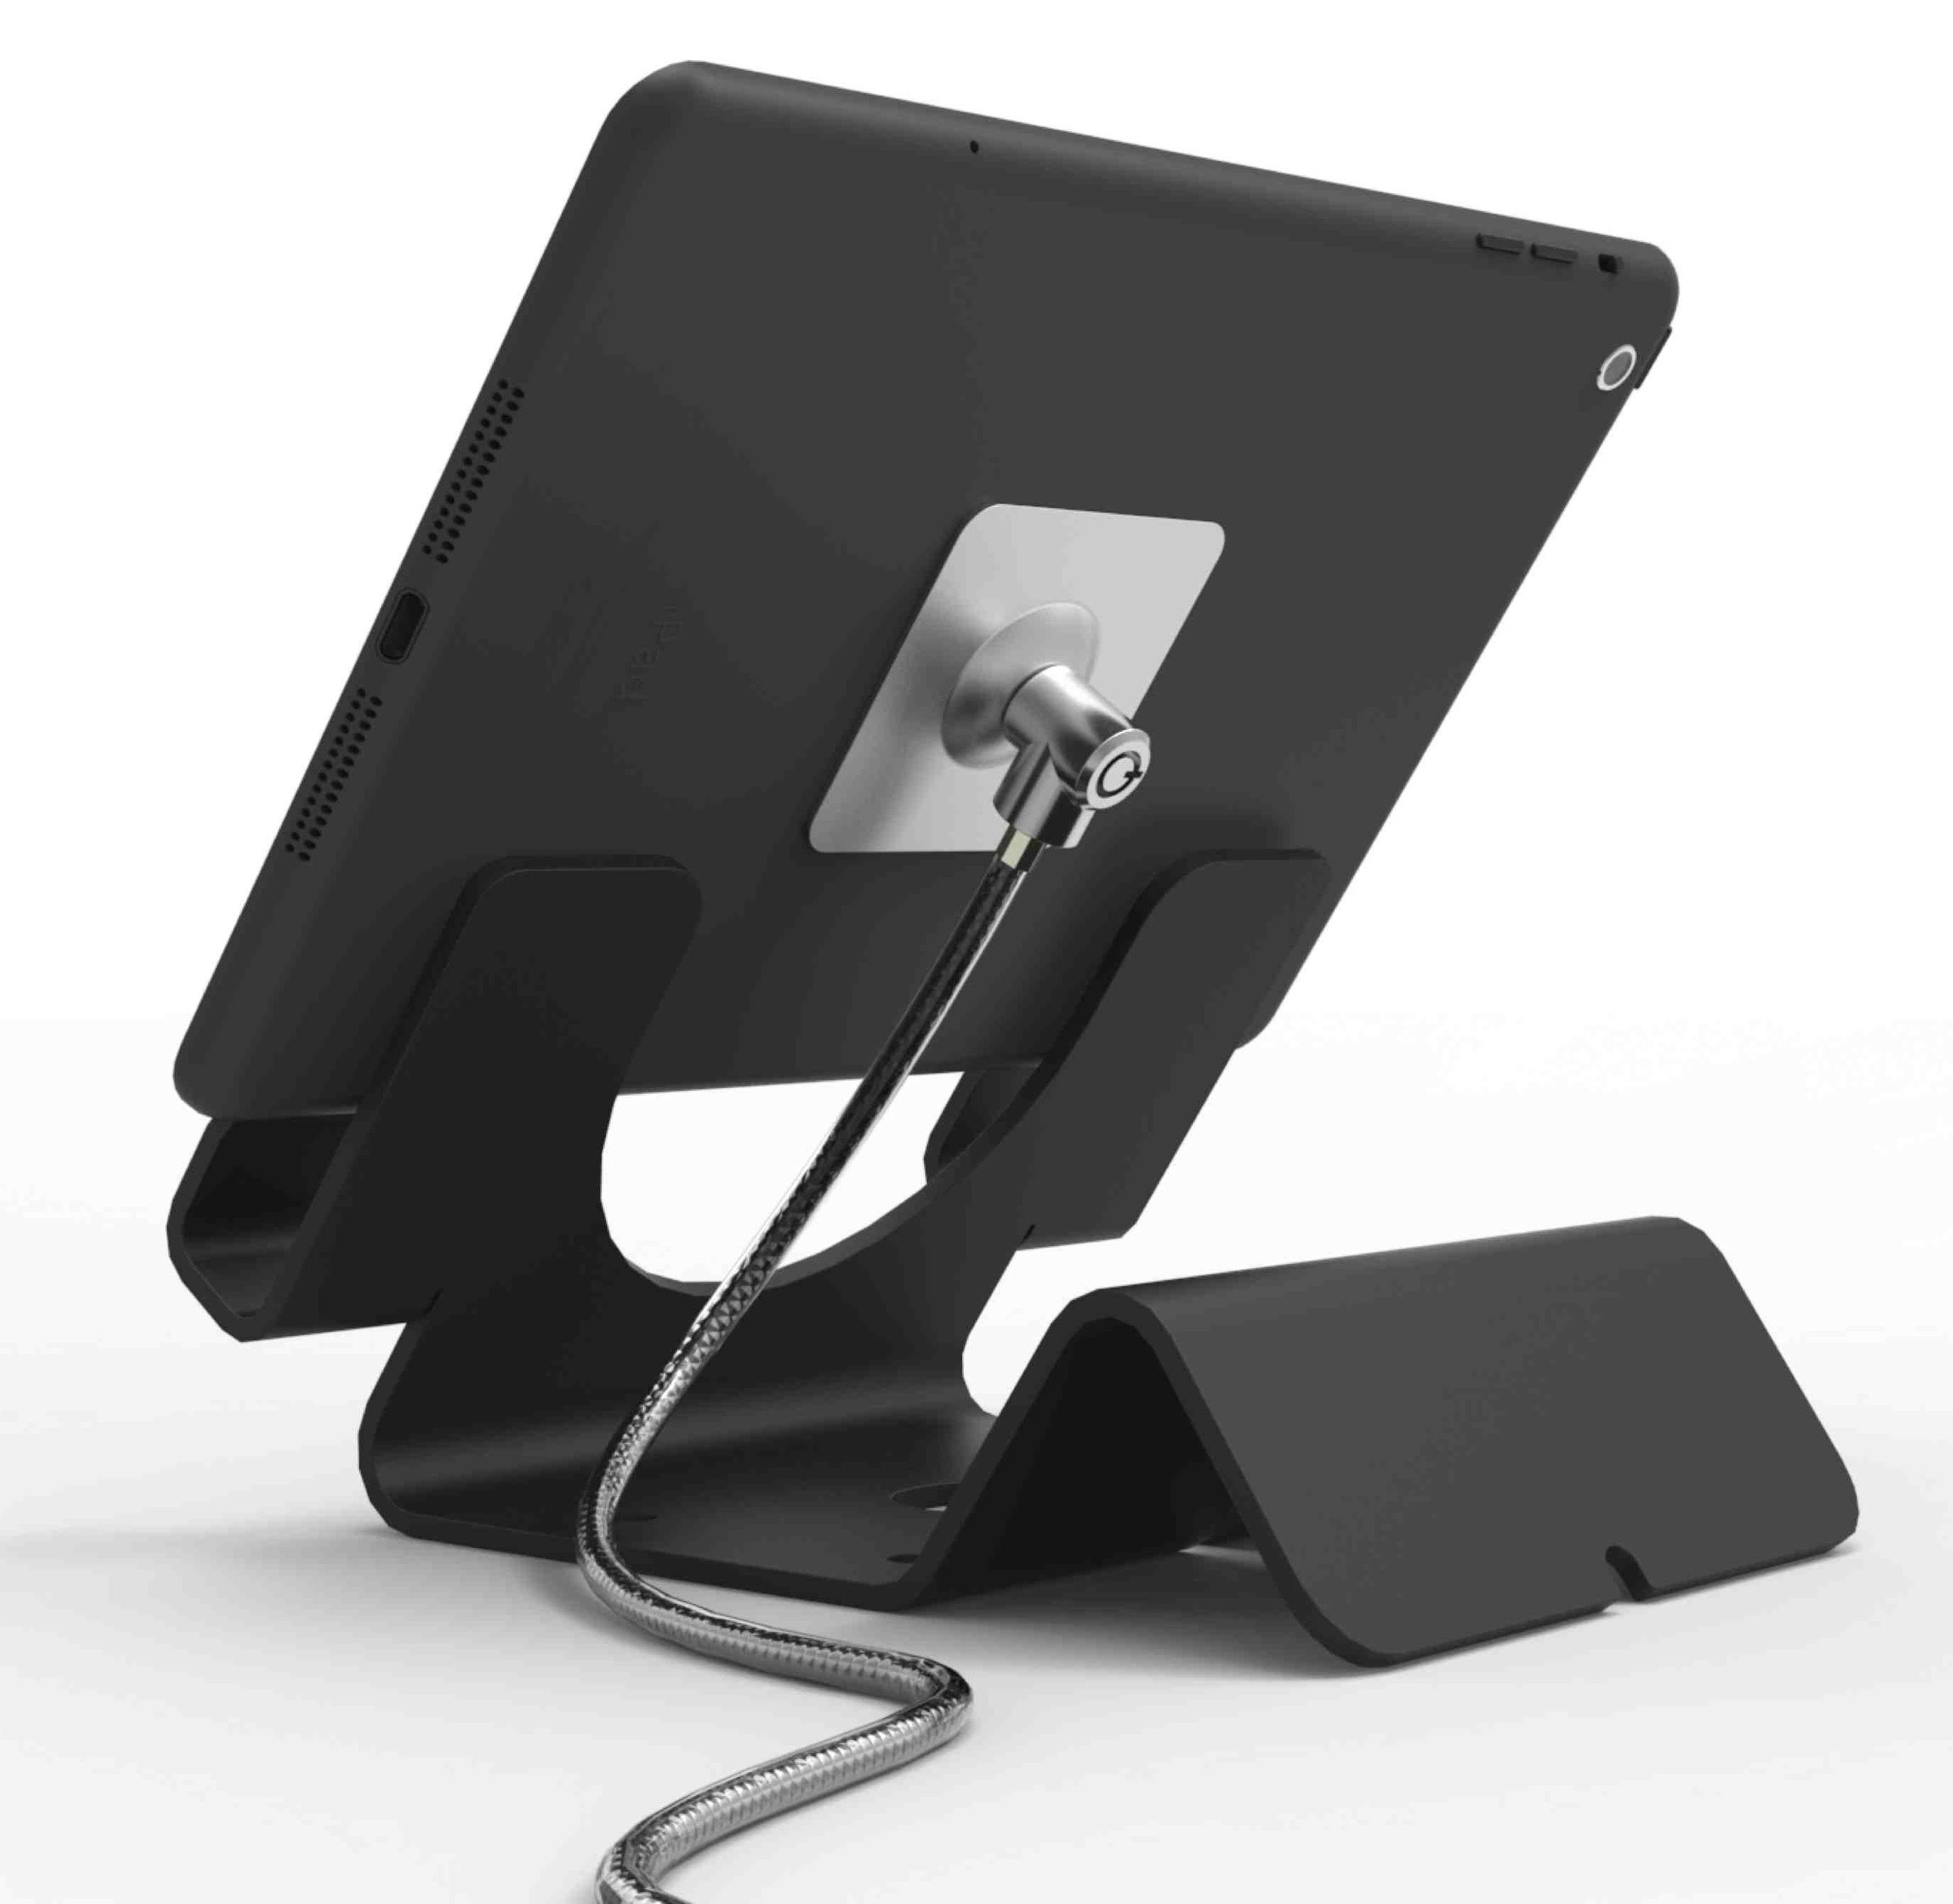 ILV HOLSTER FOR THE APPLE IPAD MINI MOBILE POS DEVICE